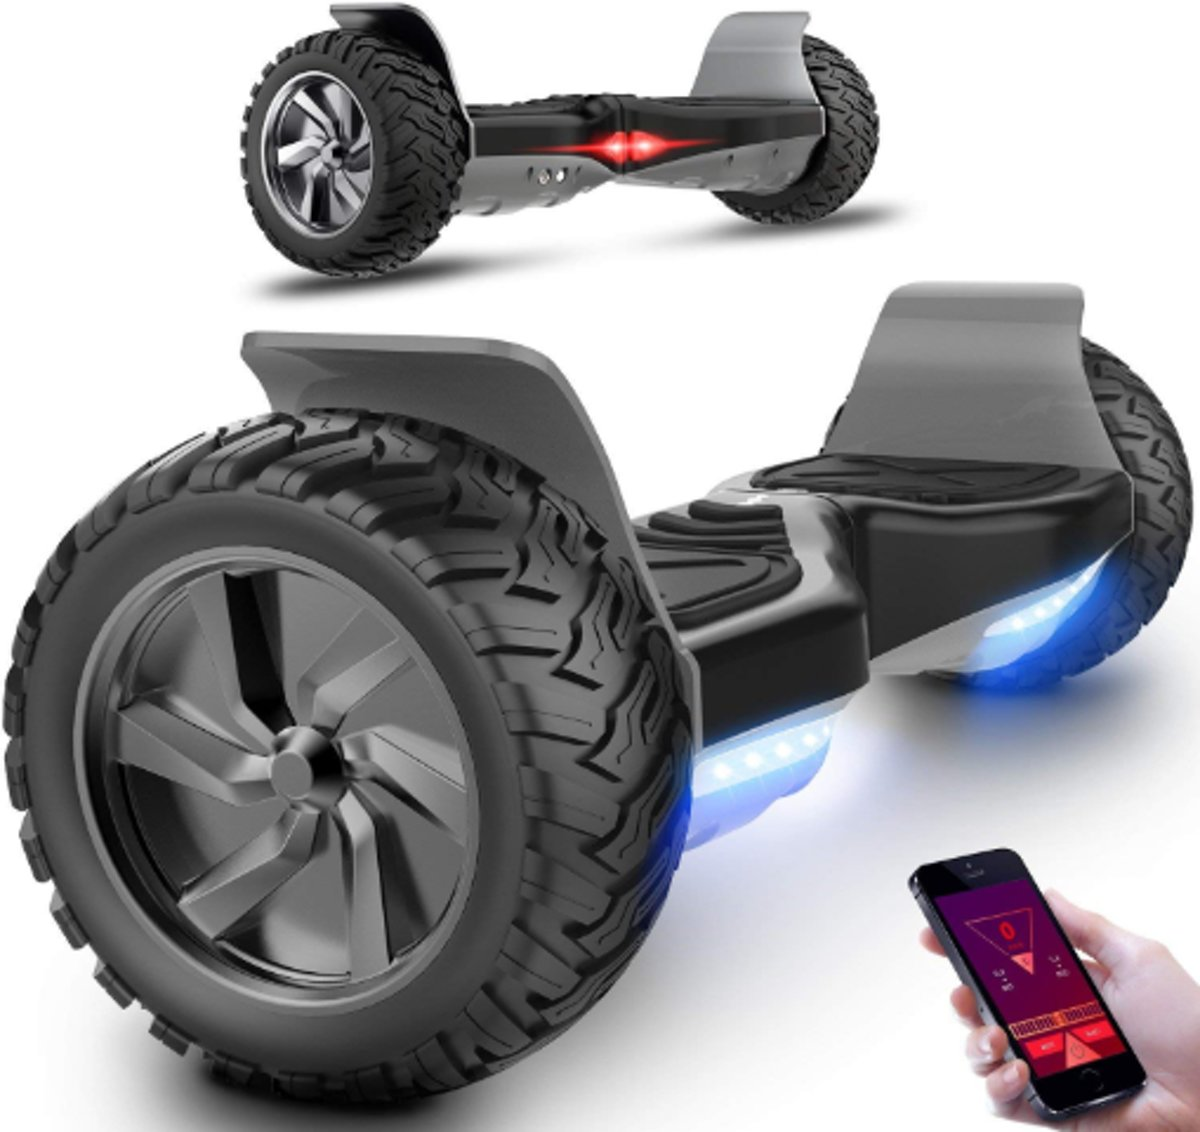 HOVERBOARD HUMMER ZWART ALLE TERREINEN 8.5 INCHES Off Road App Functie met V5 Bluetooth speaker&TAOTAO 2018 SOFTWARE